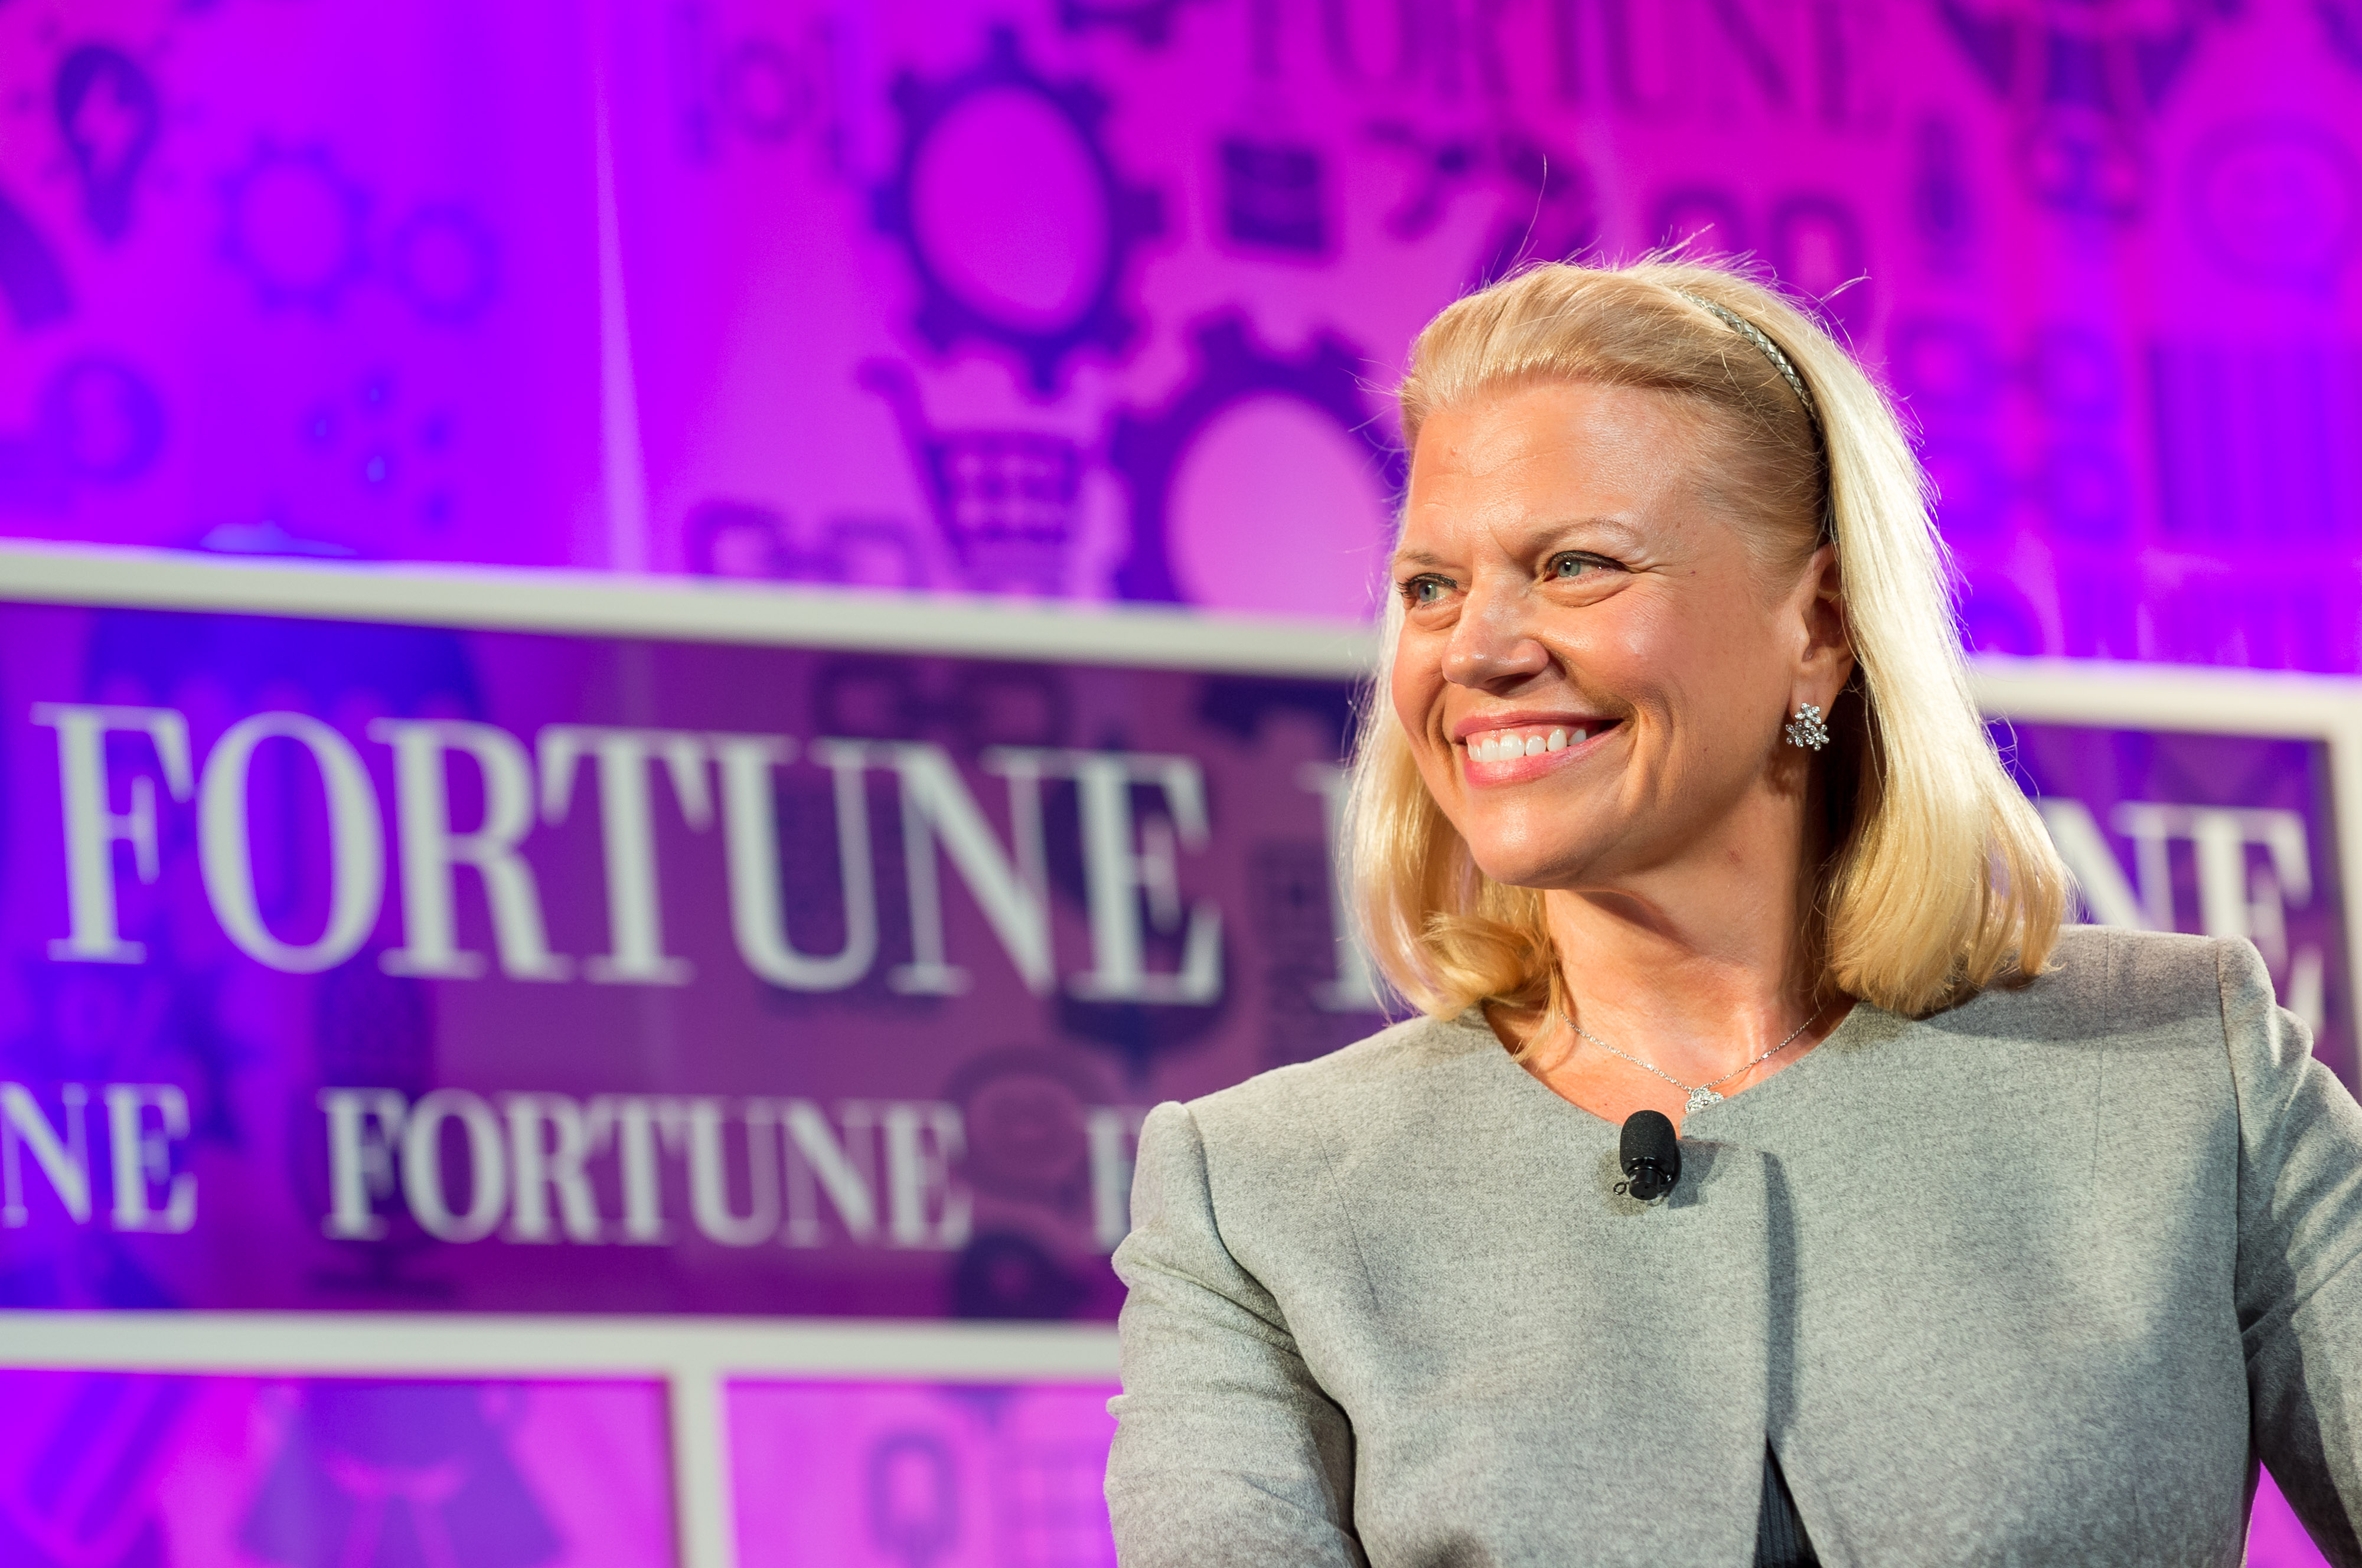 IBM CEO Ginni Rometty at the 2013 Fortune Most Powerful Women Summit in Washington, D.C.